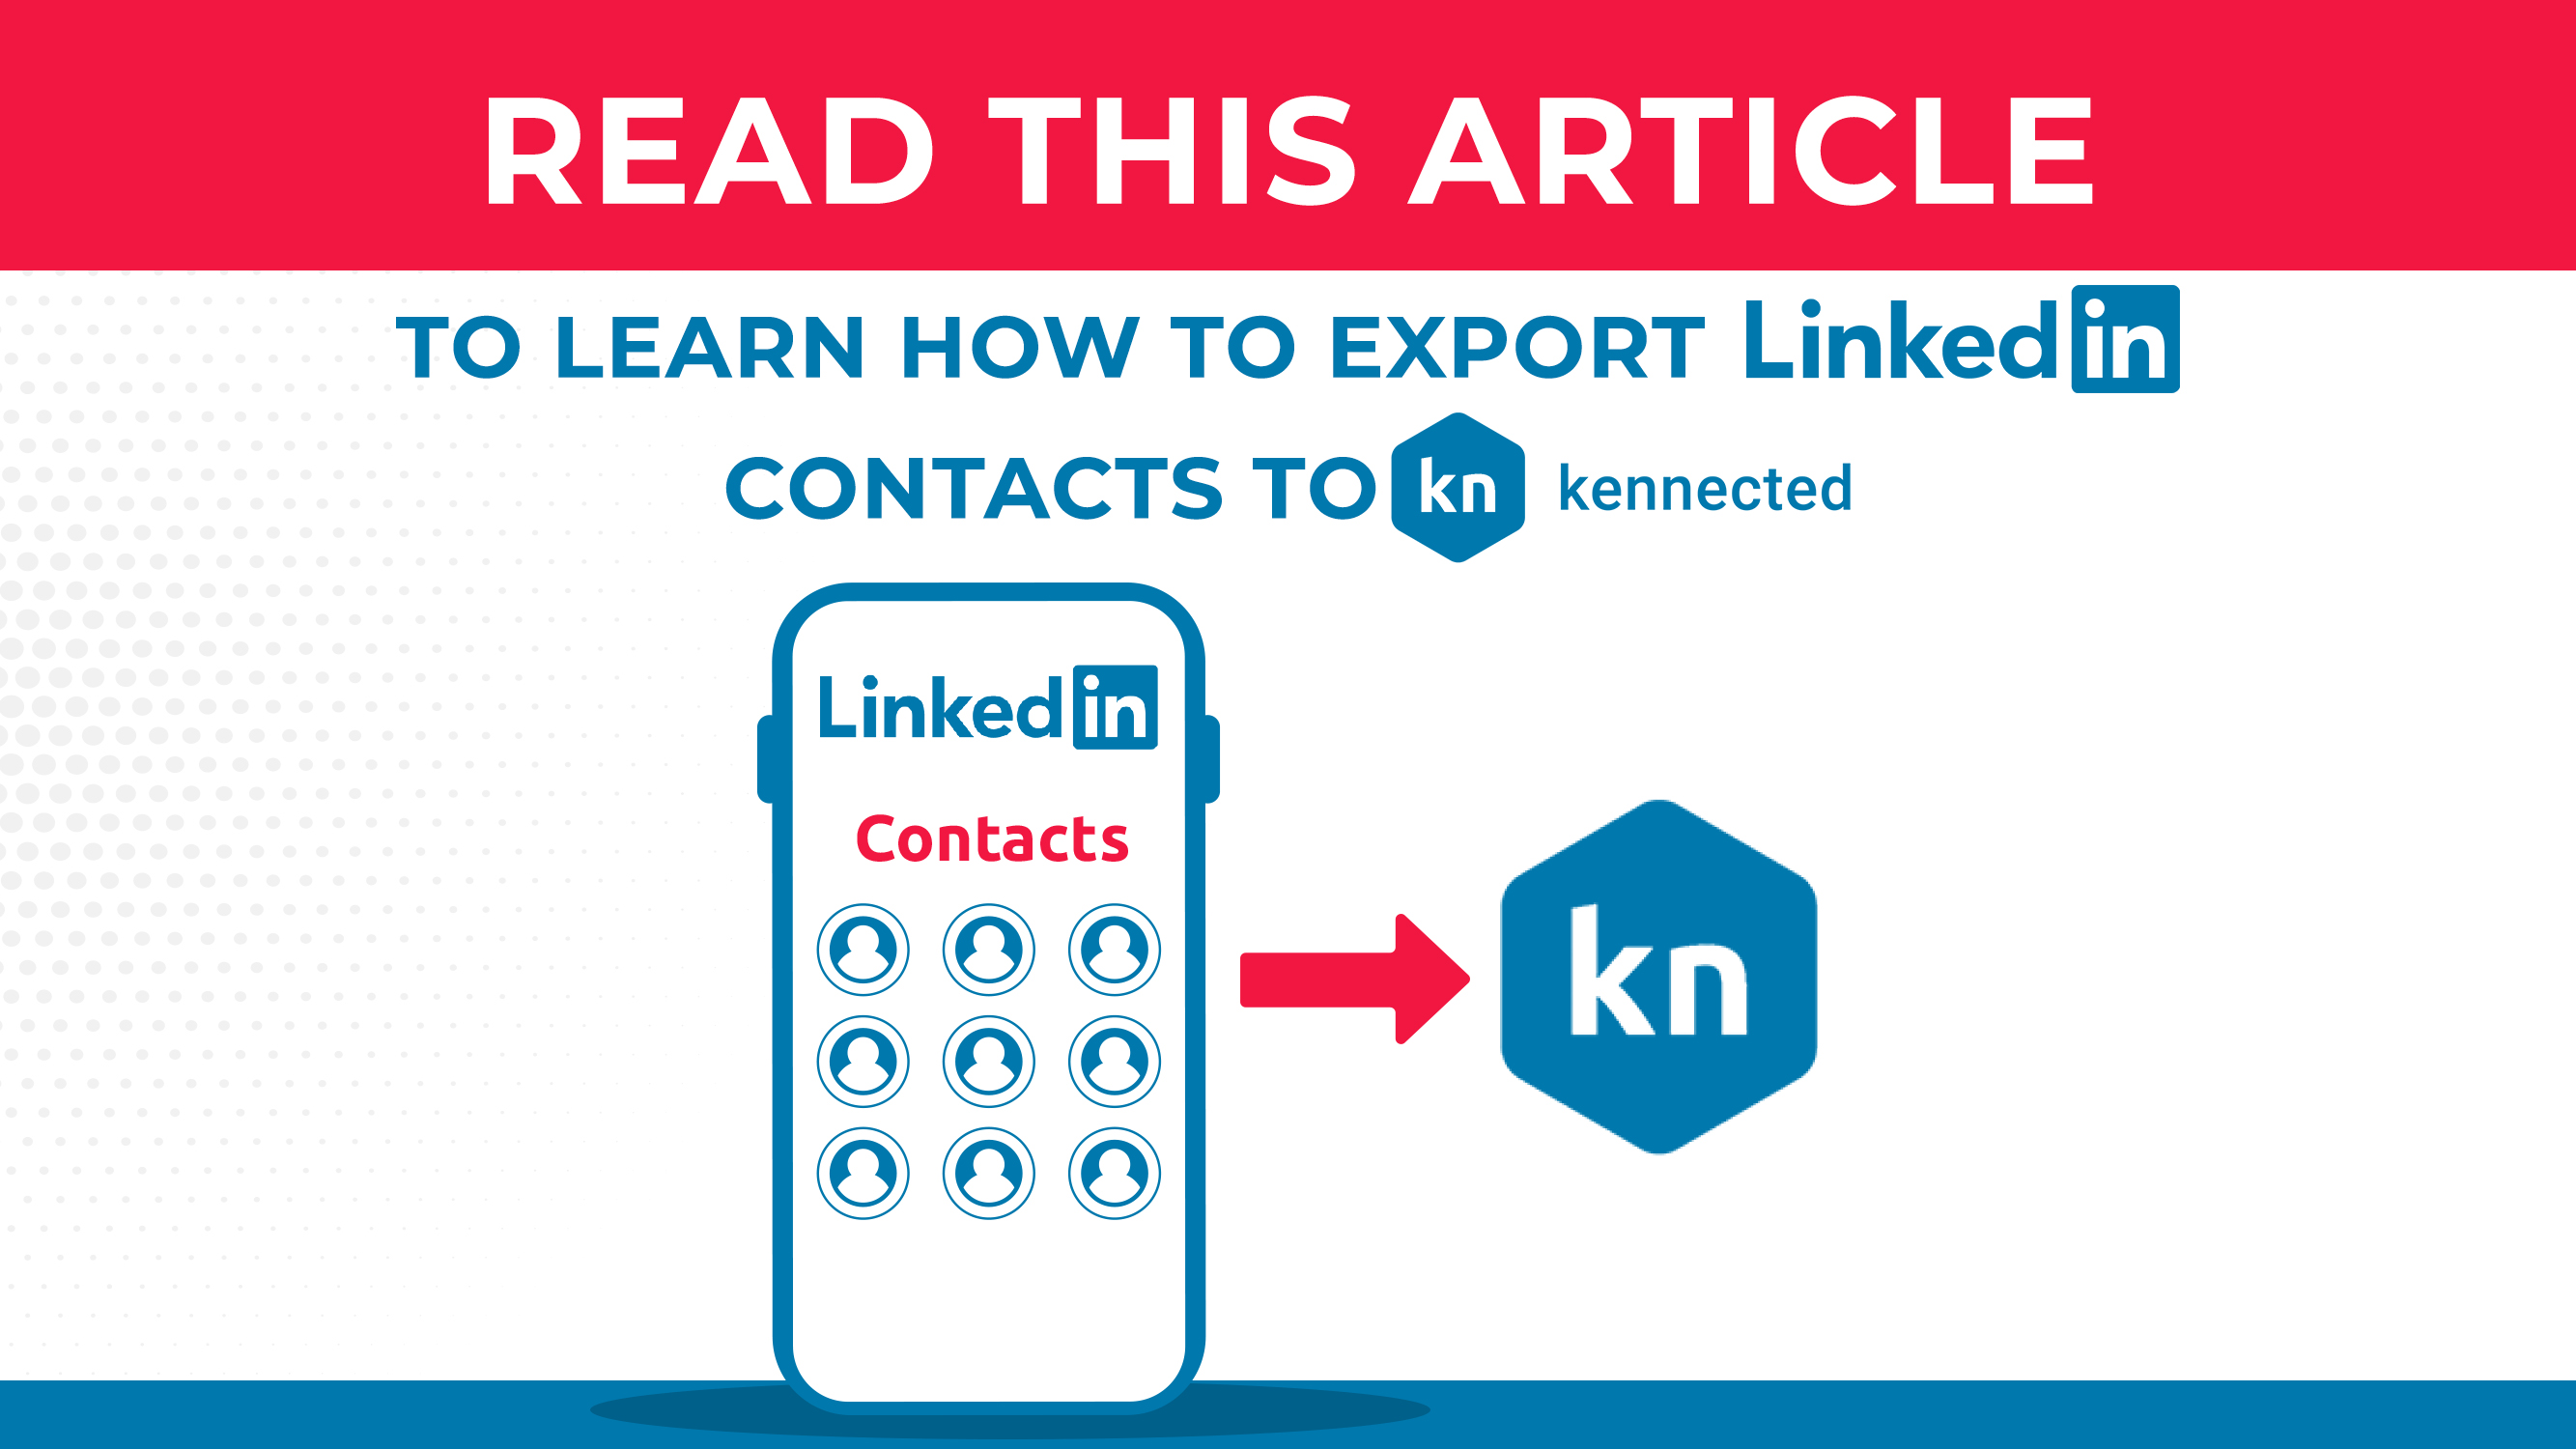 Read This Article To Learn How To Export LinkedIn Contacts—Kennected